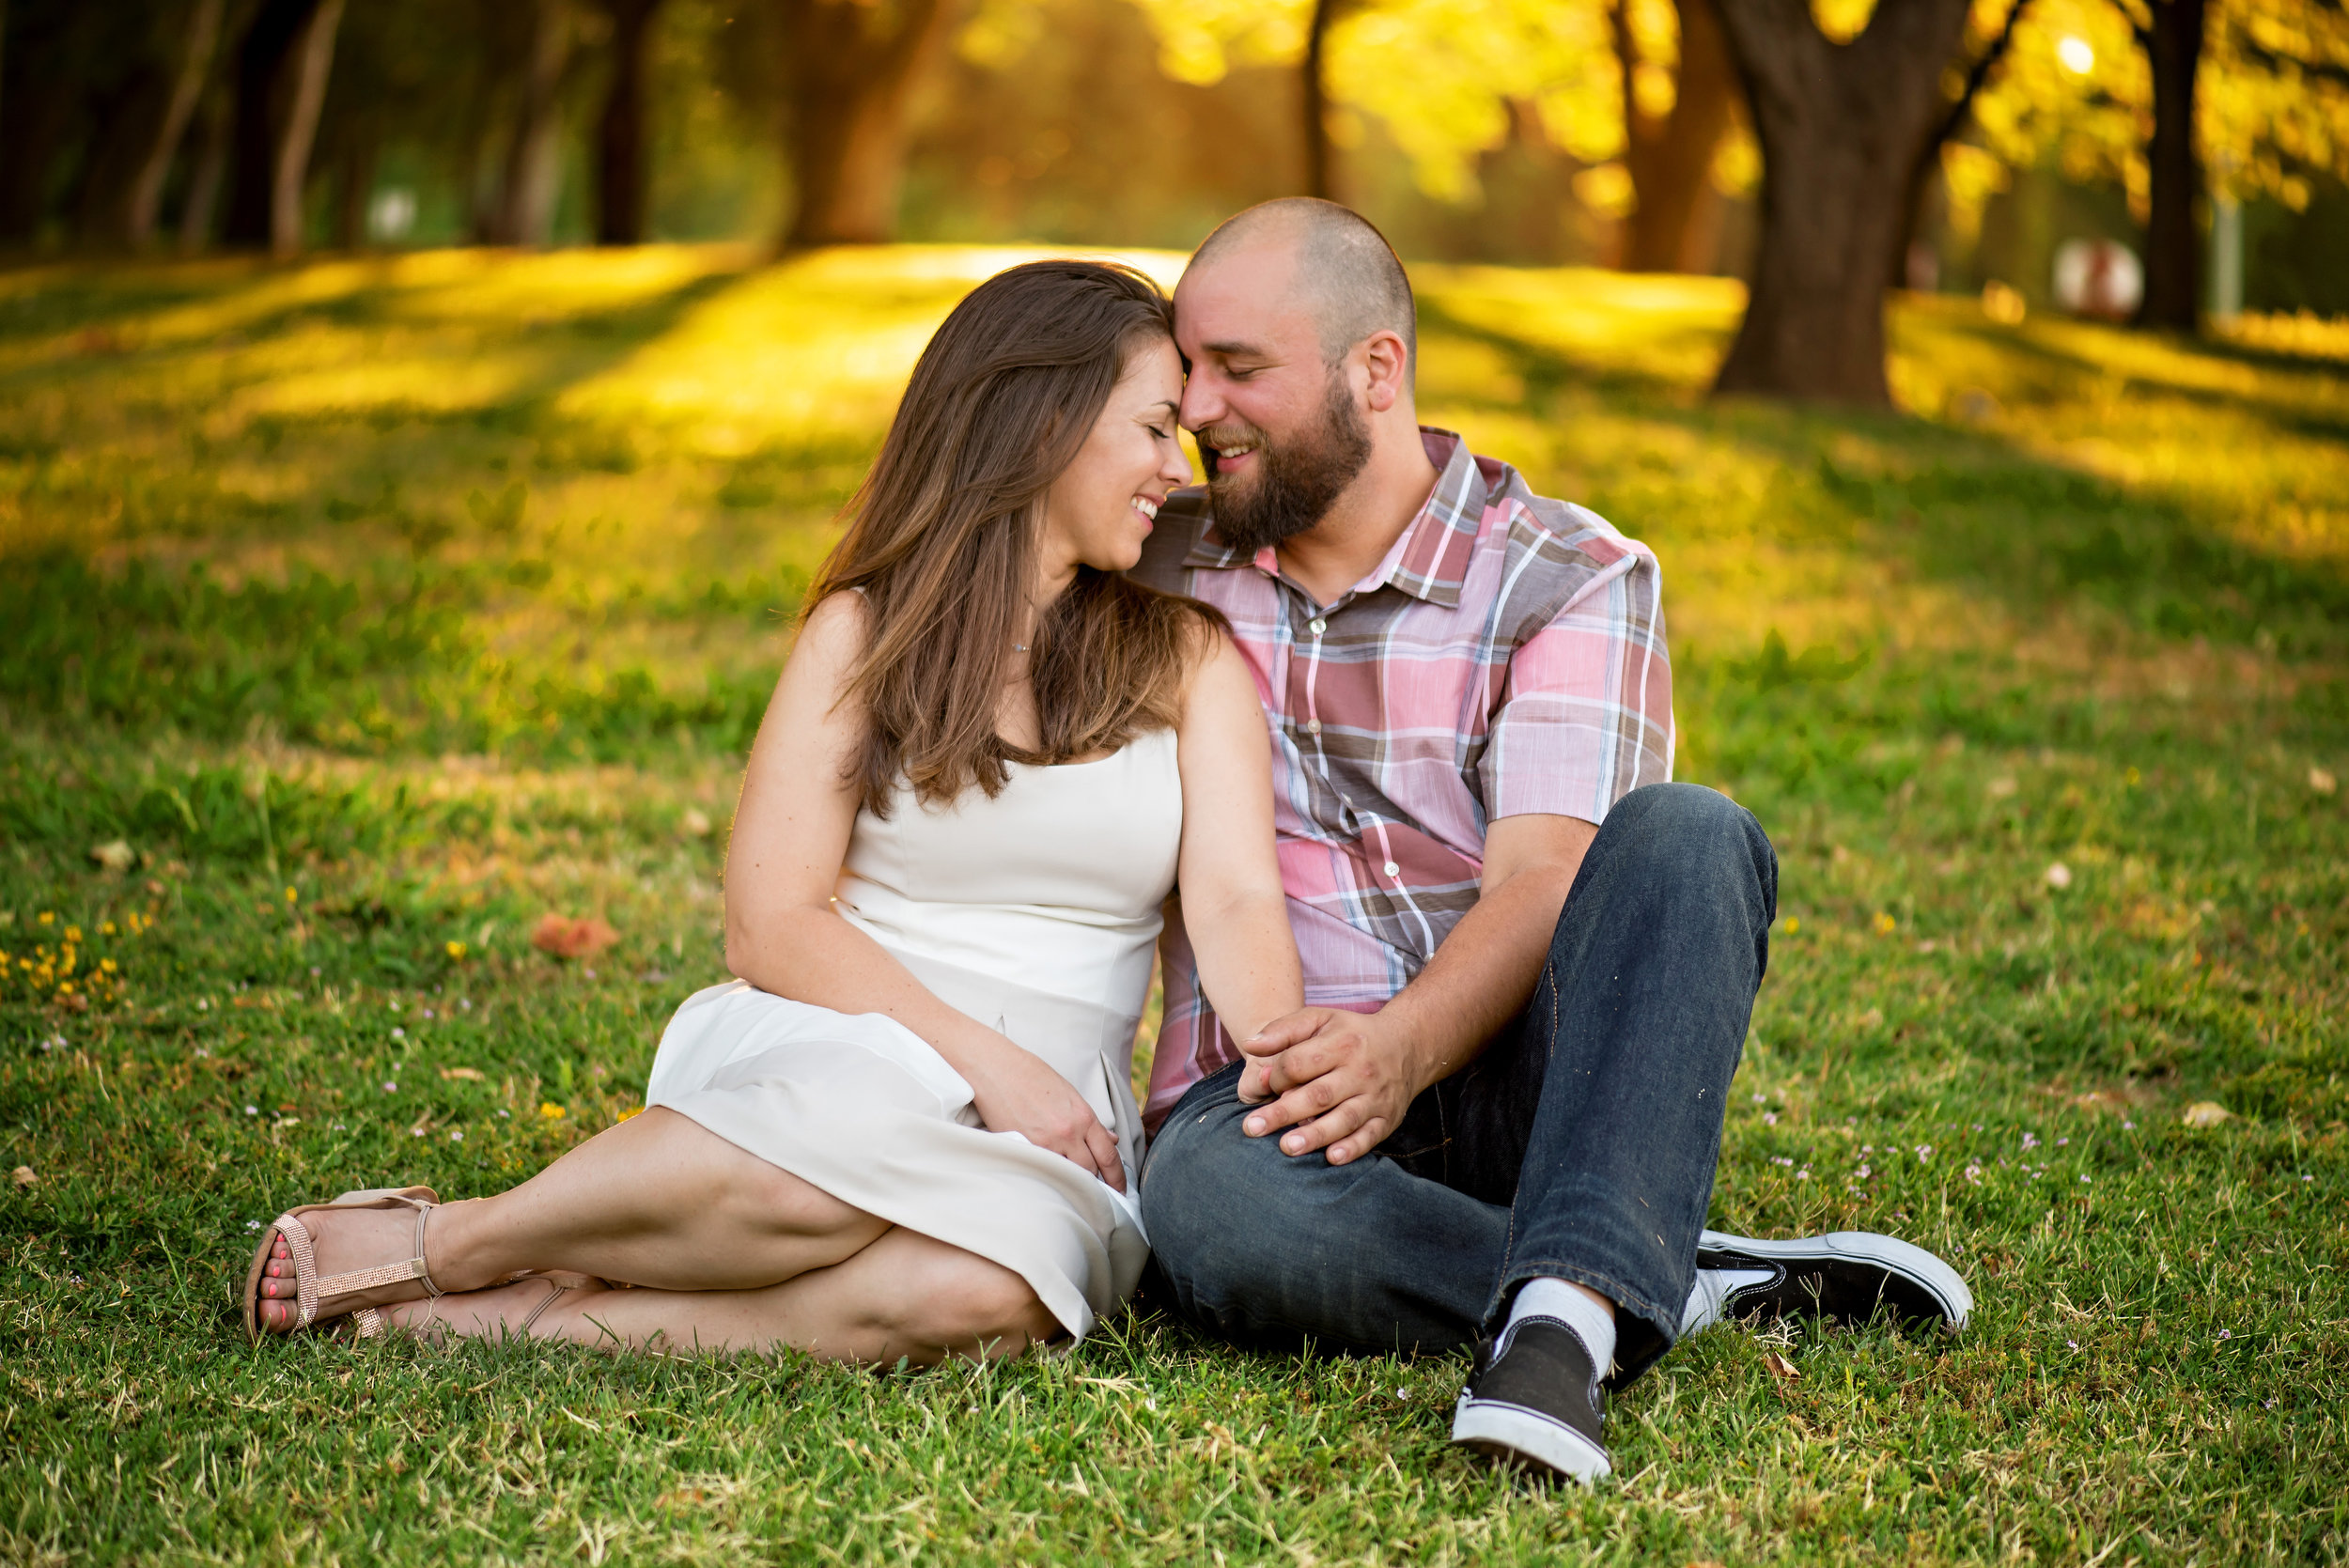 holly-mike-005-sacramento-engagement-wedding-photographer-katherine-nicole-photography.JPG